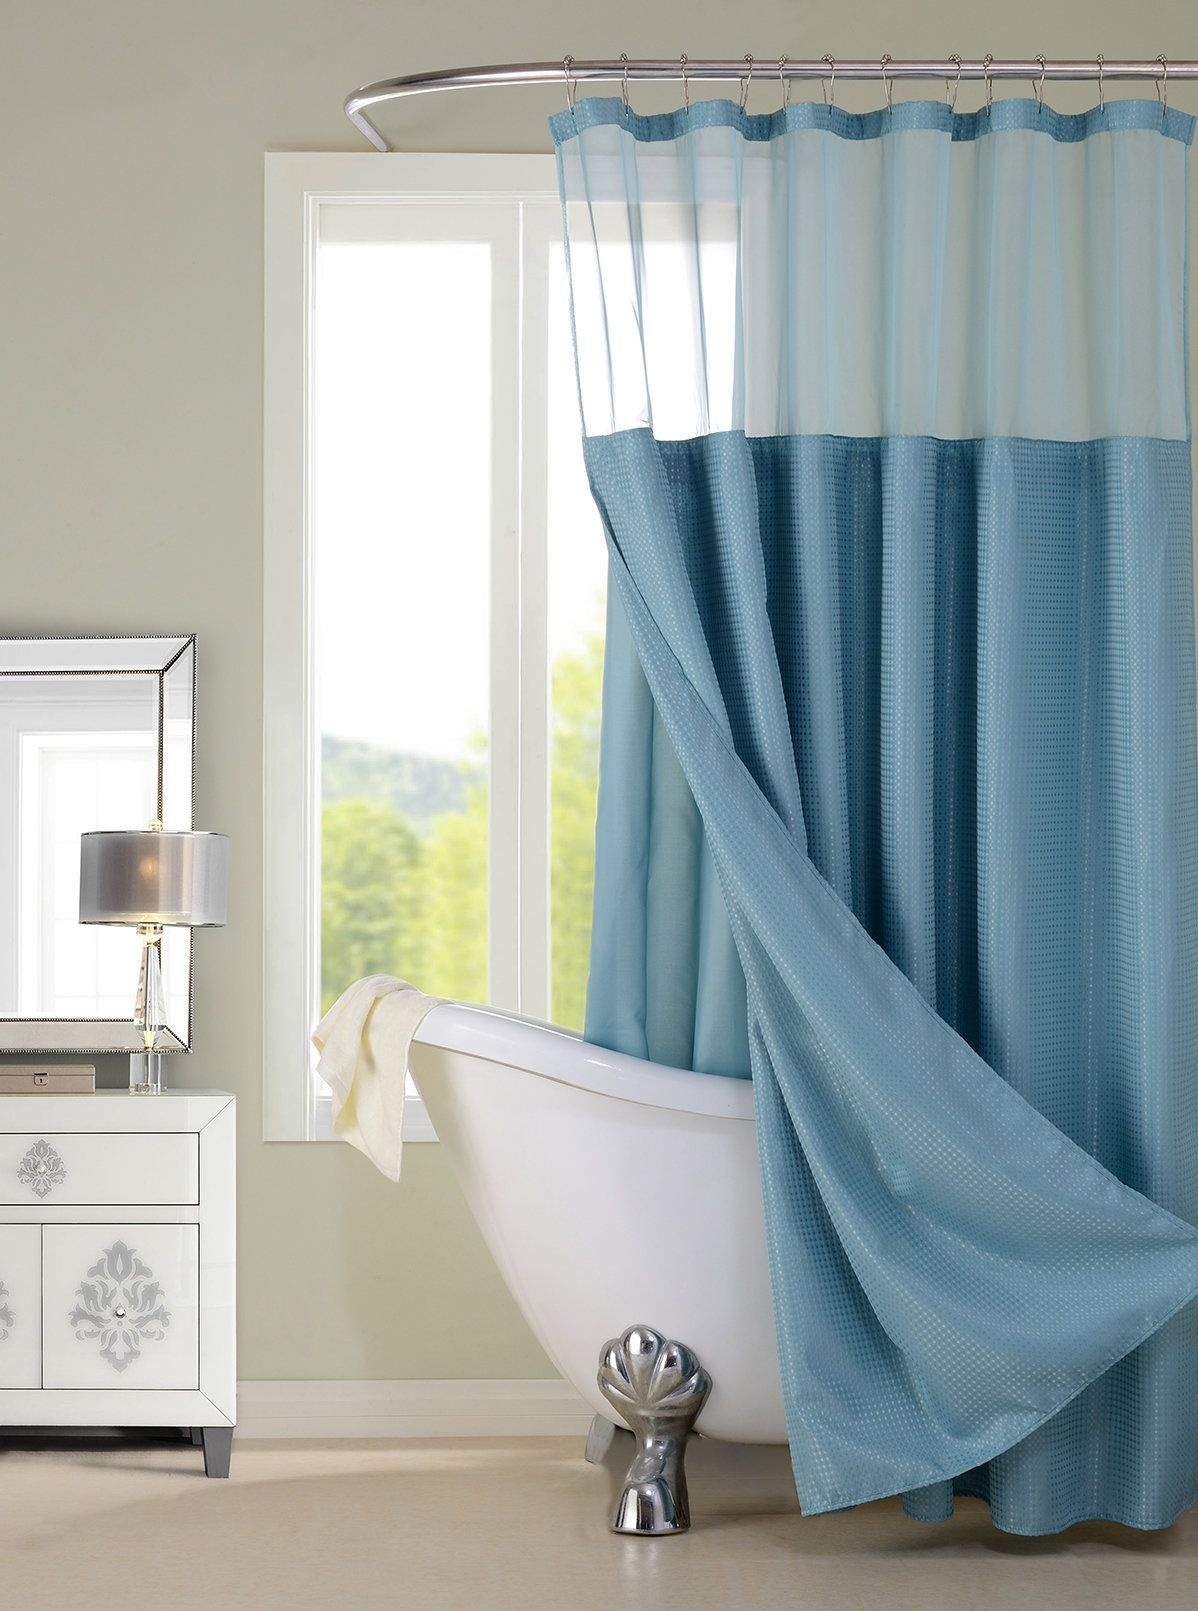 Norvelt Shower Curtain | Decorating | Pinterest | Hotel shower curtain